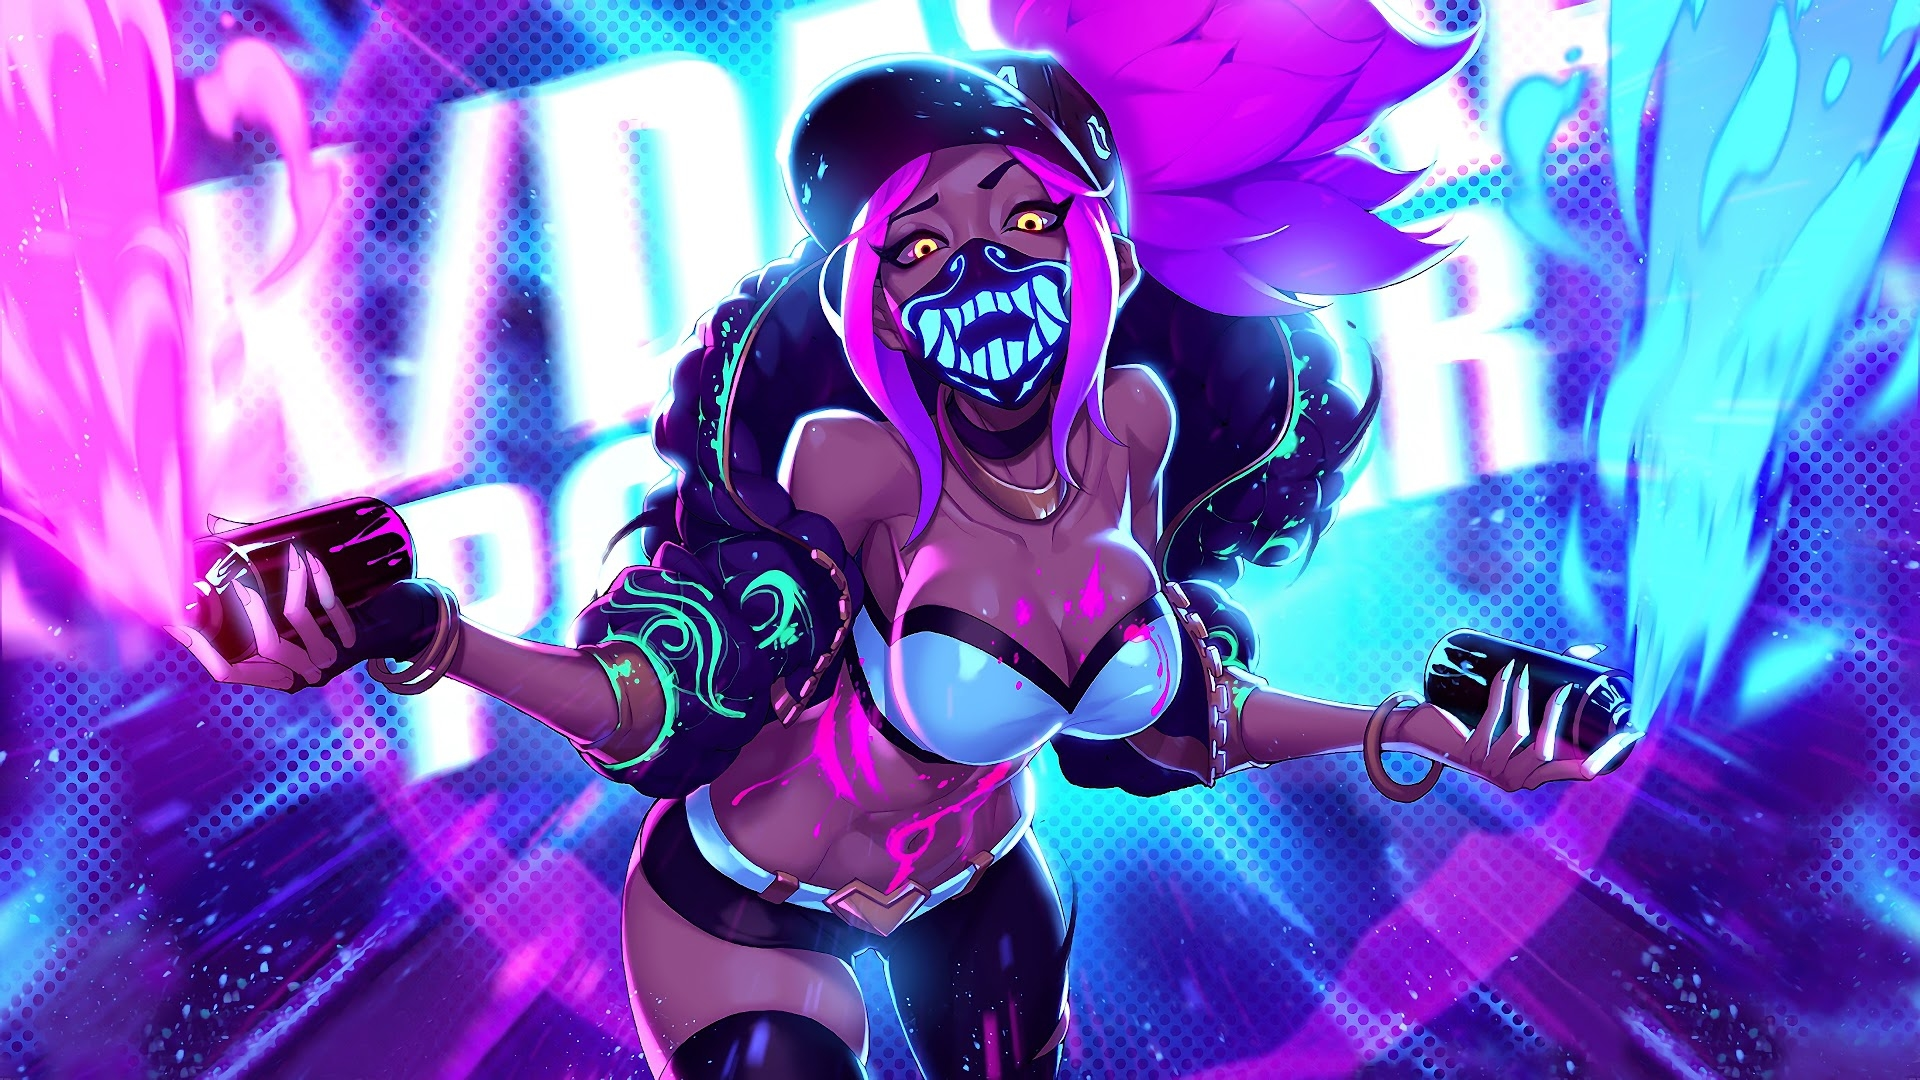 4k League Of Legends Wallpapers Posted By Samantha Cunningham